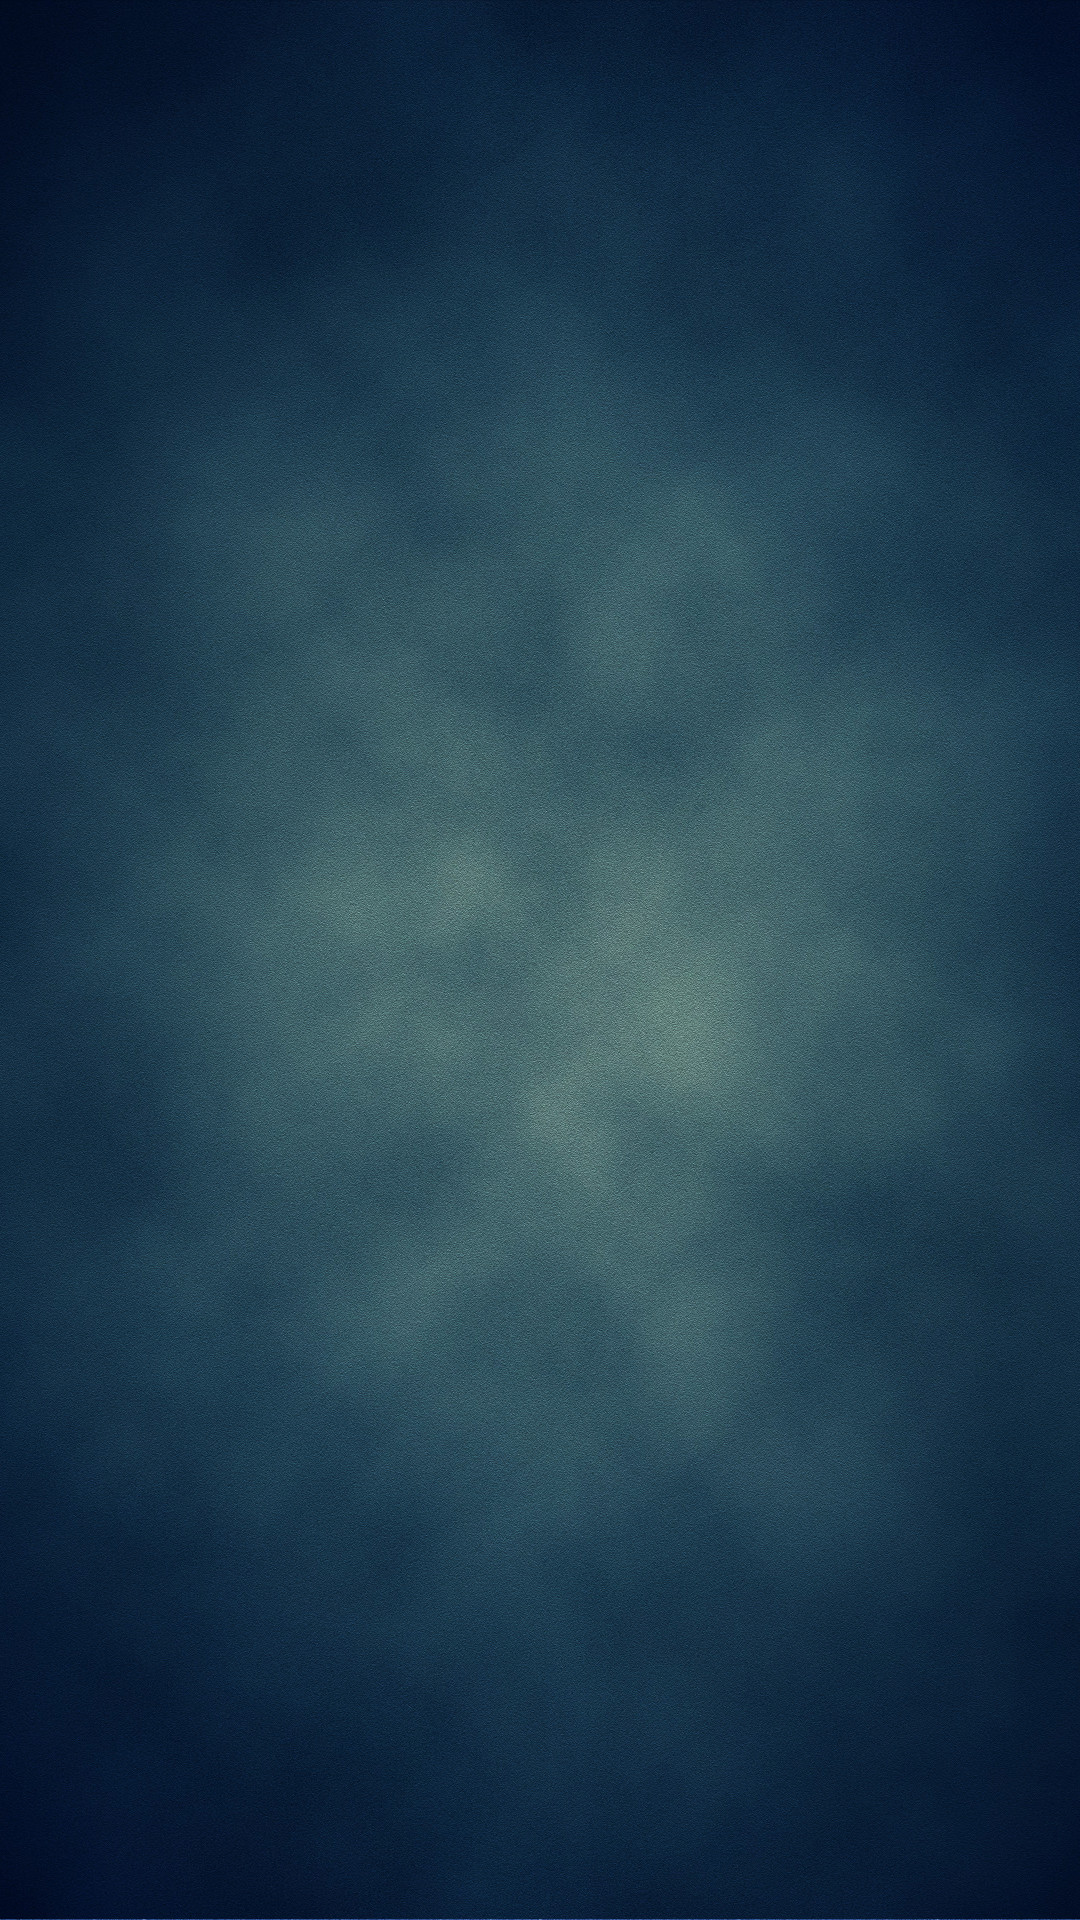 Blue htc one wallpaper Leather